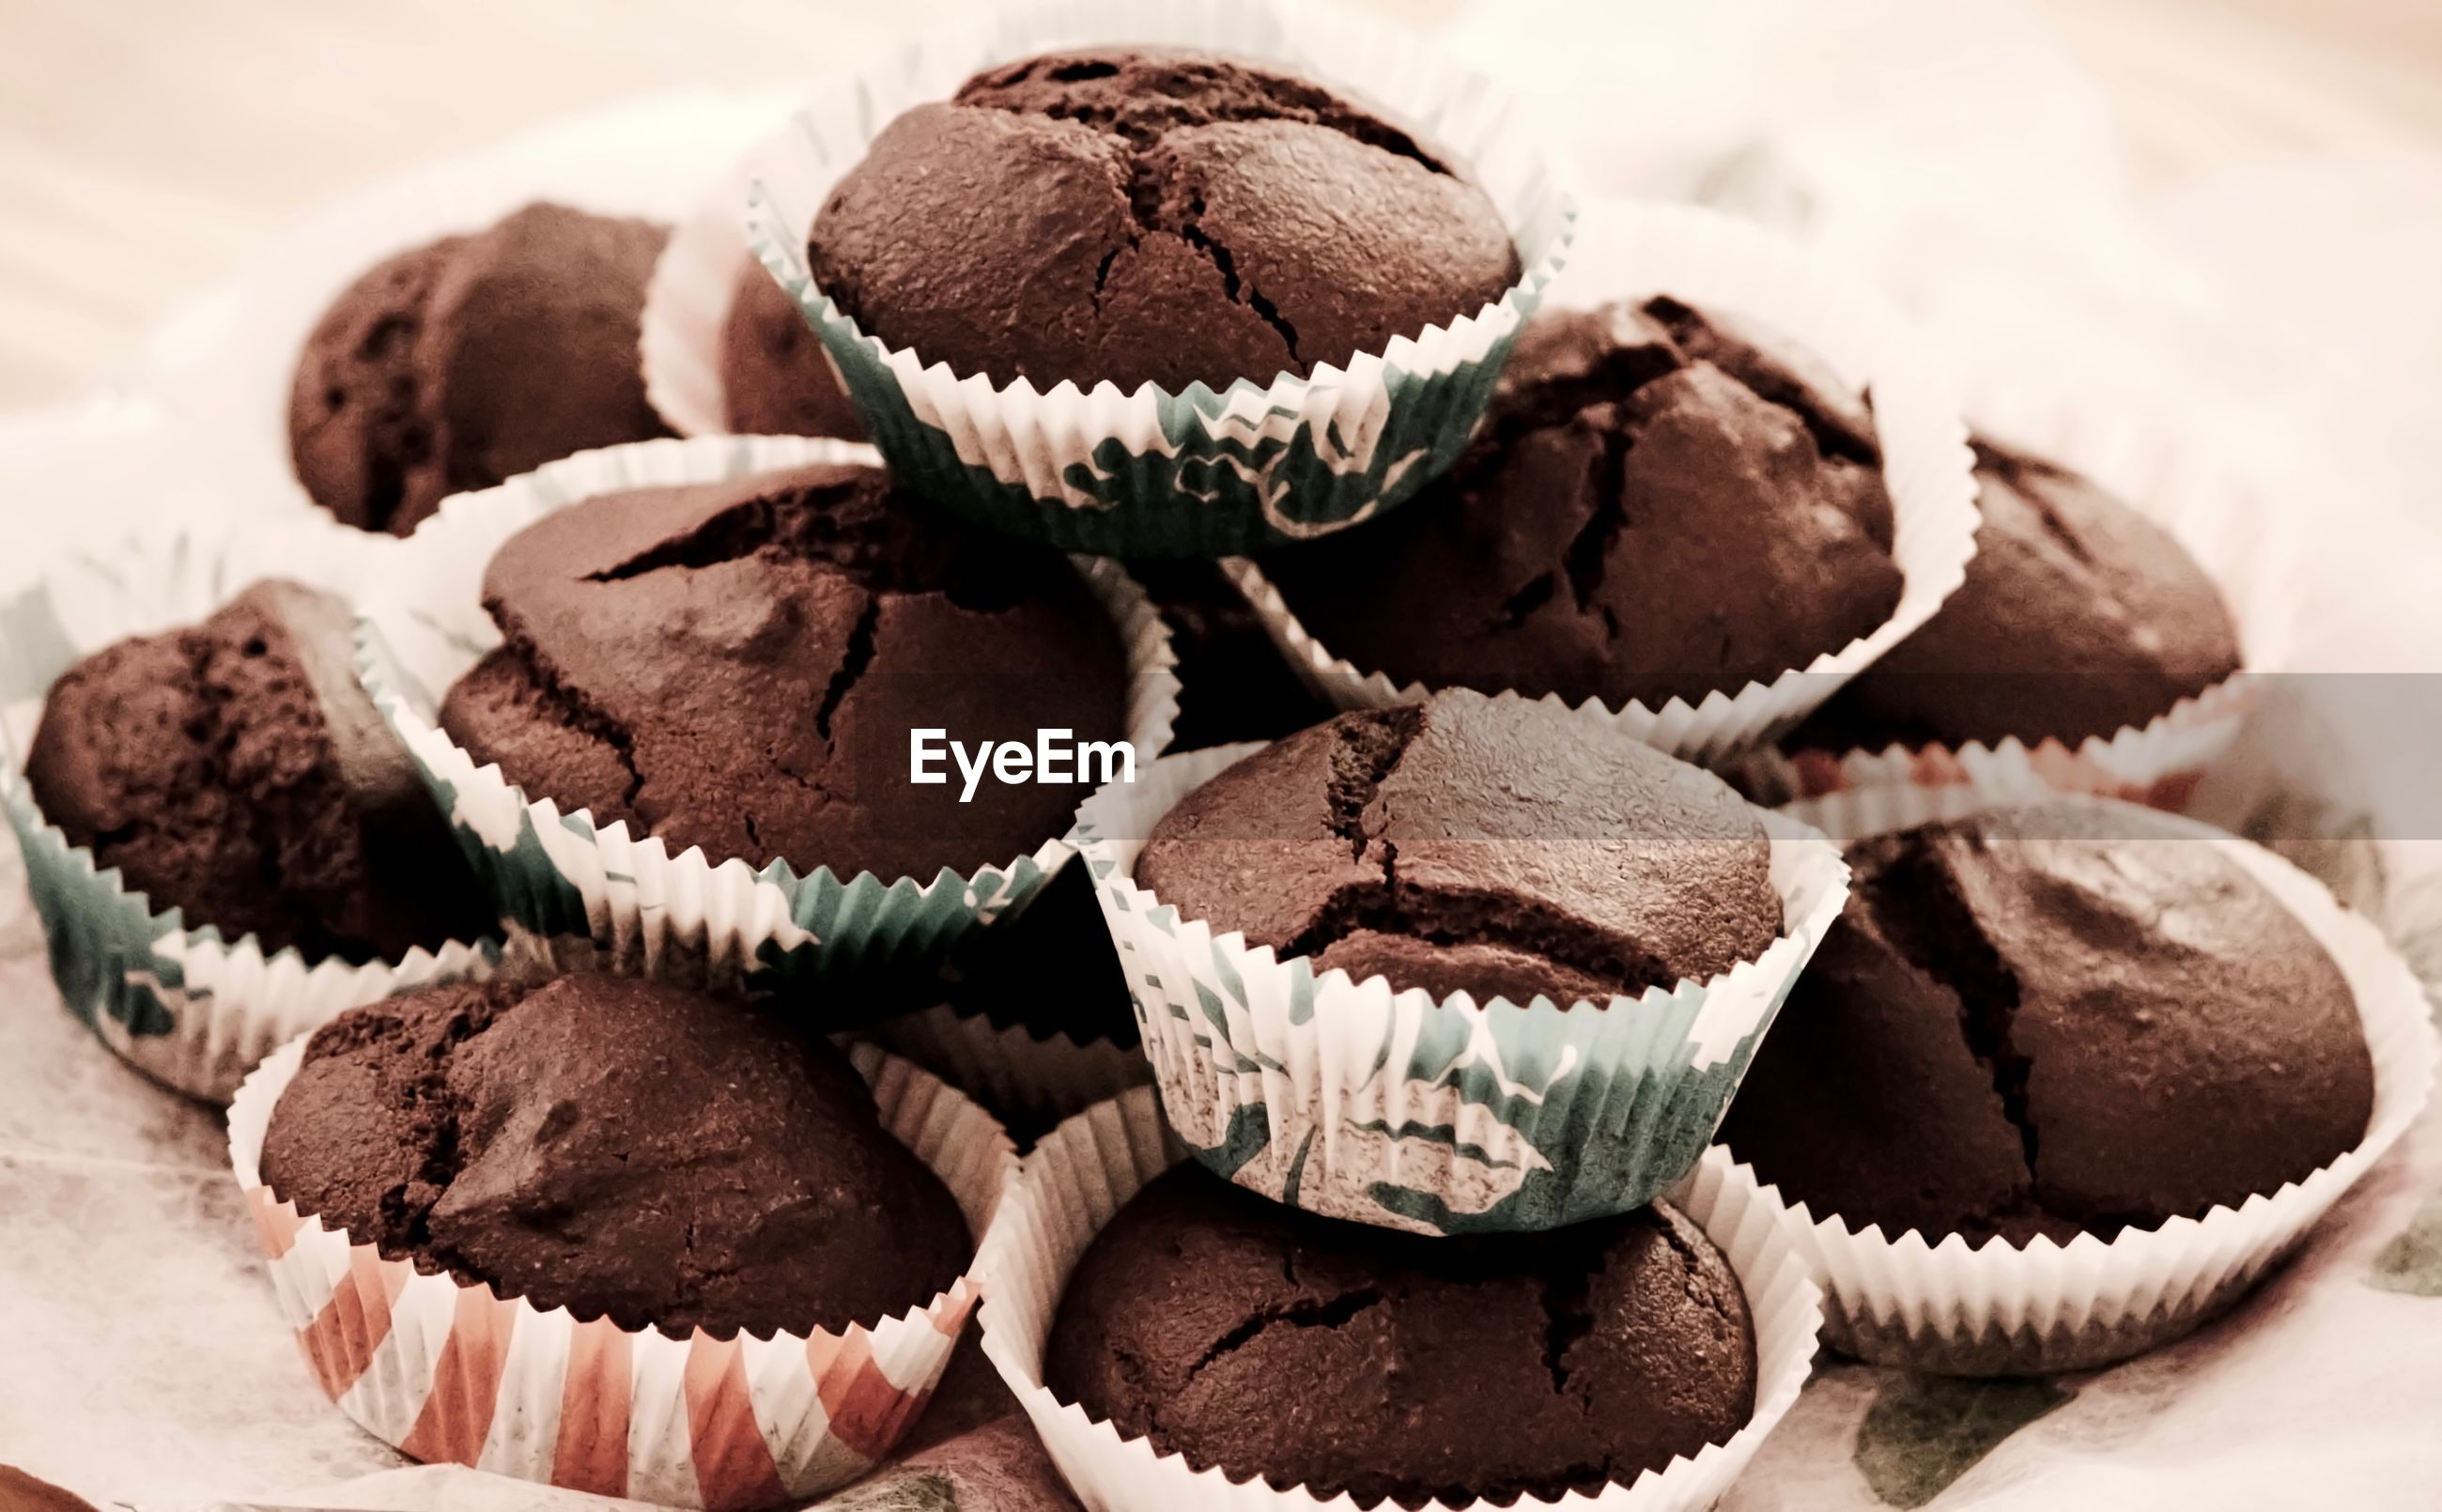 Close-up of chocolate muffins on table